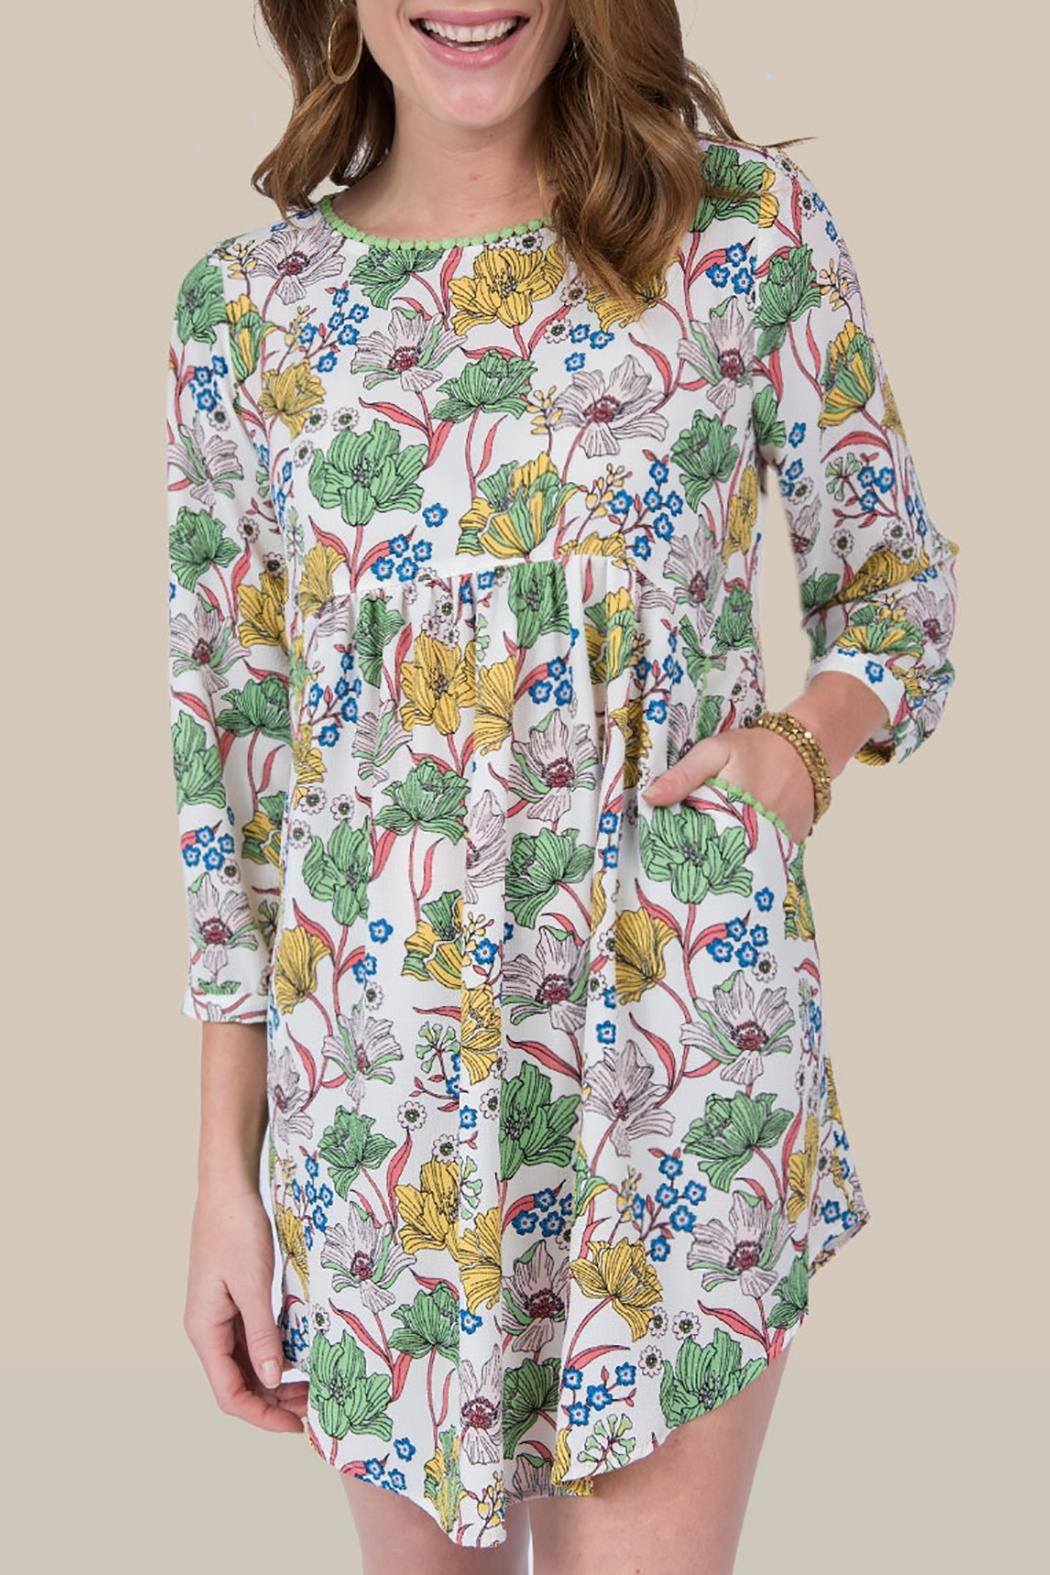 Ivy Jane / Uncle Frank  Floral Spring Tunic - Main Image